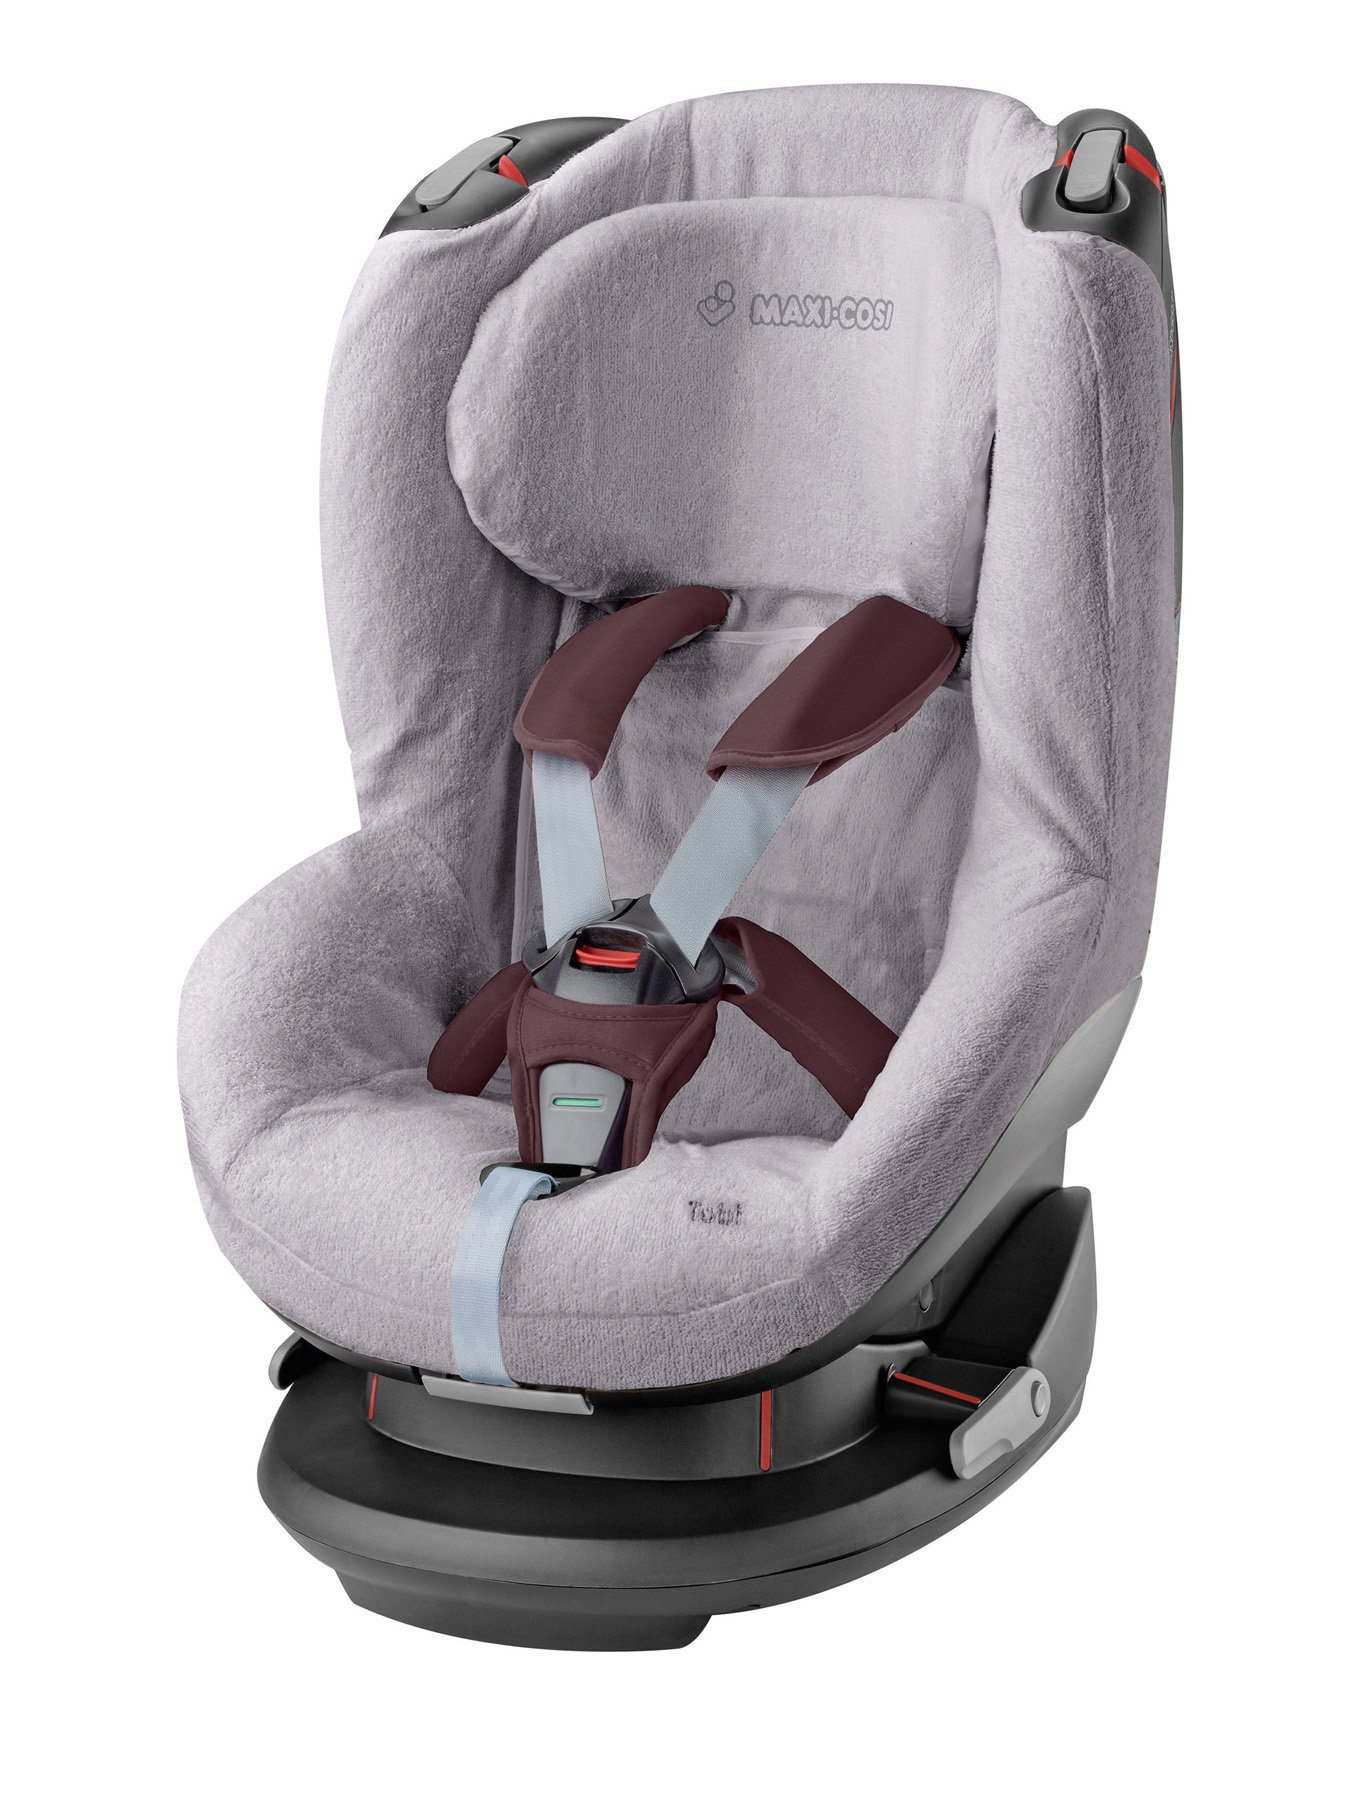 Maxi-Cosi Tobi Car Seat Summer Cover, Cool Grey Maxi-Cosi Designed to protect your Maxi-Cosi Tobi car seat Made of absorbent materials to trap perspiration more quickly Provides your baby with added comfort thanks to the soft cotton terry toweling cloth 1